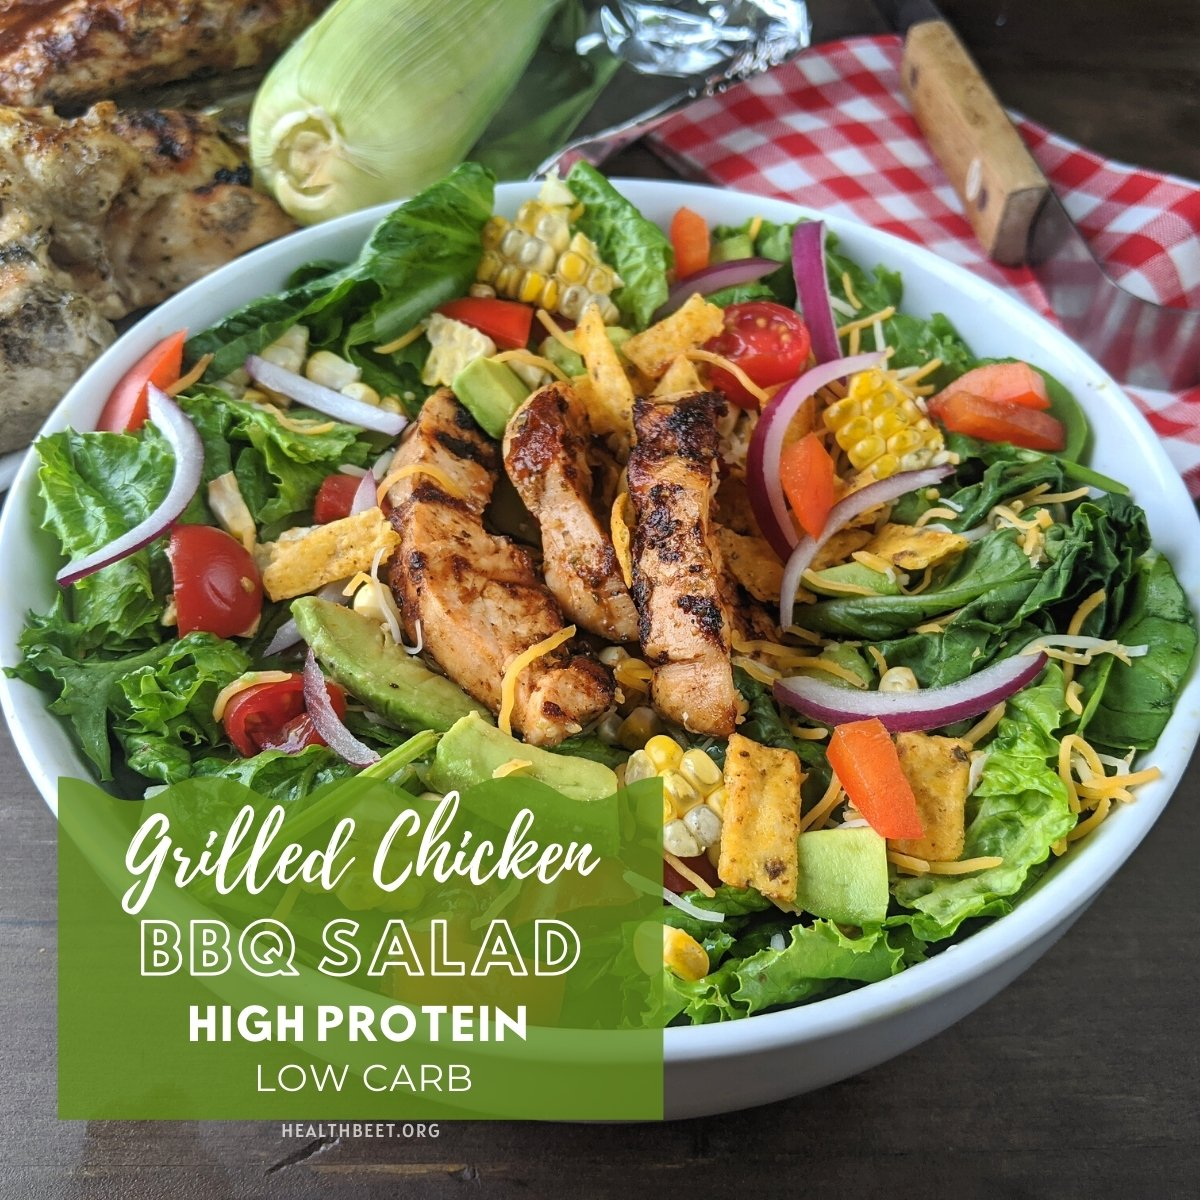 high protein low carb grilled chicken BBQ salad